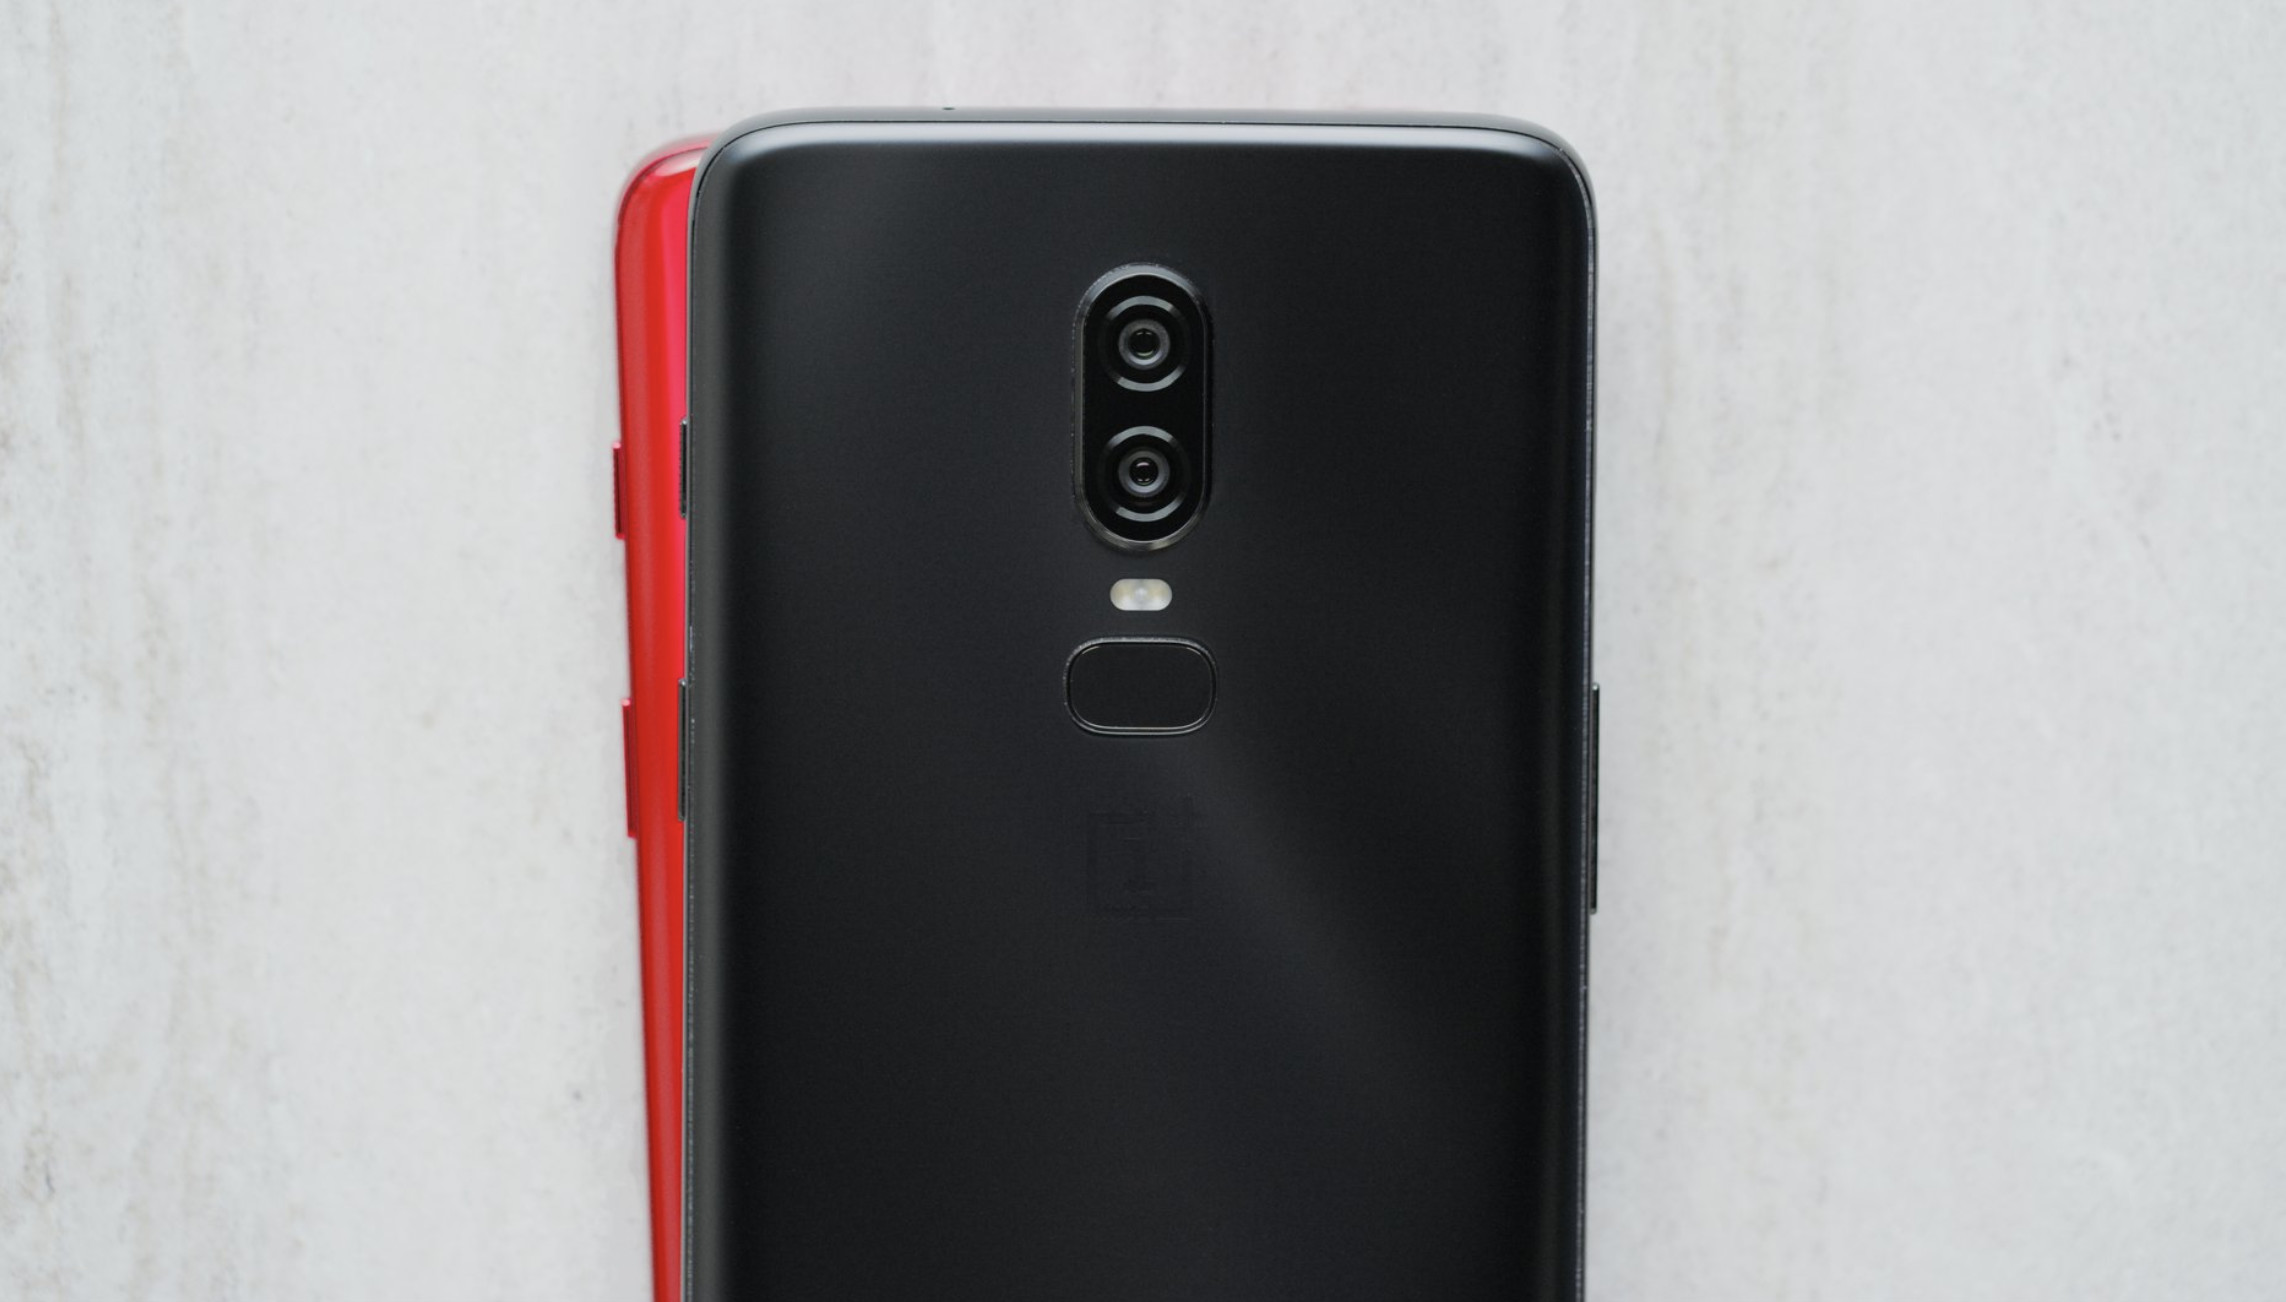 The red OnePlus 6 you've been waiting for is finally here